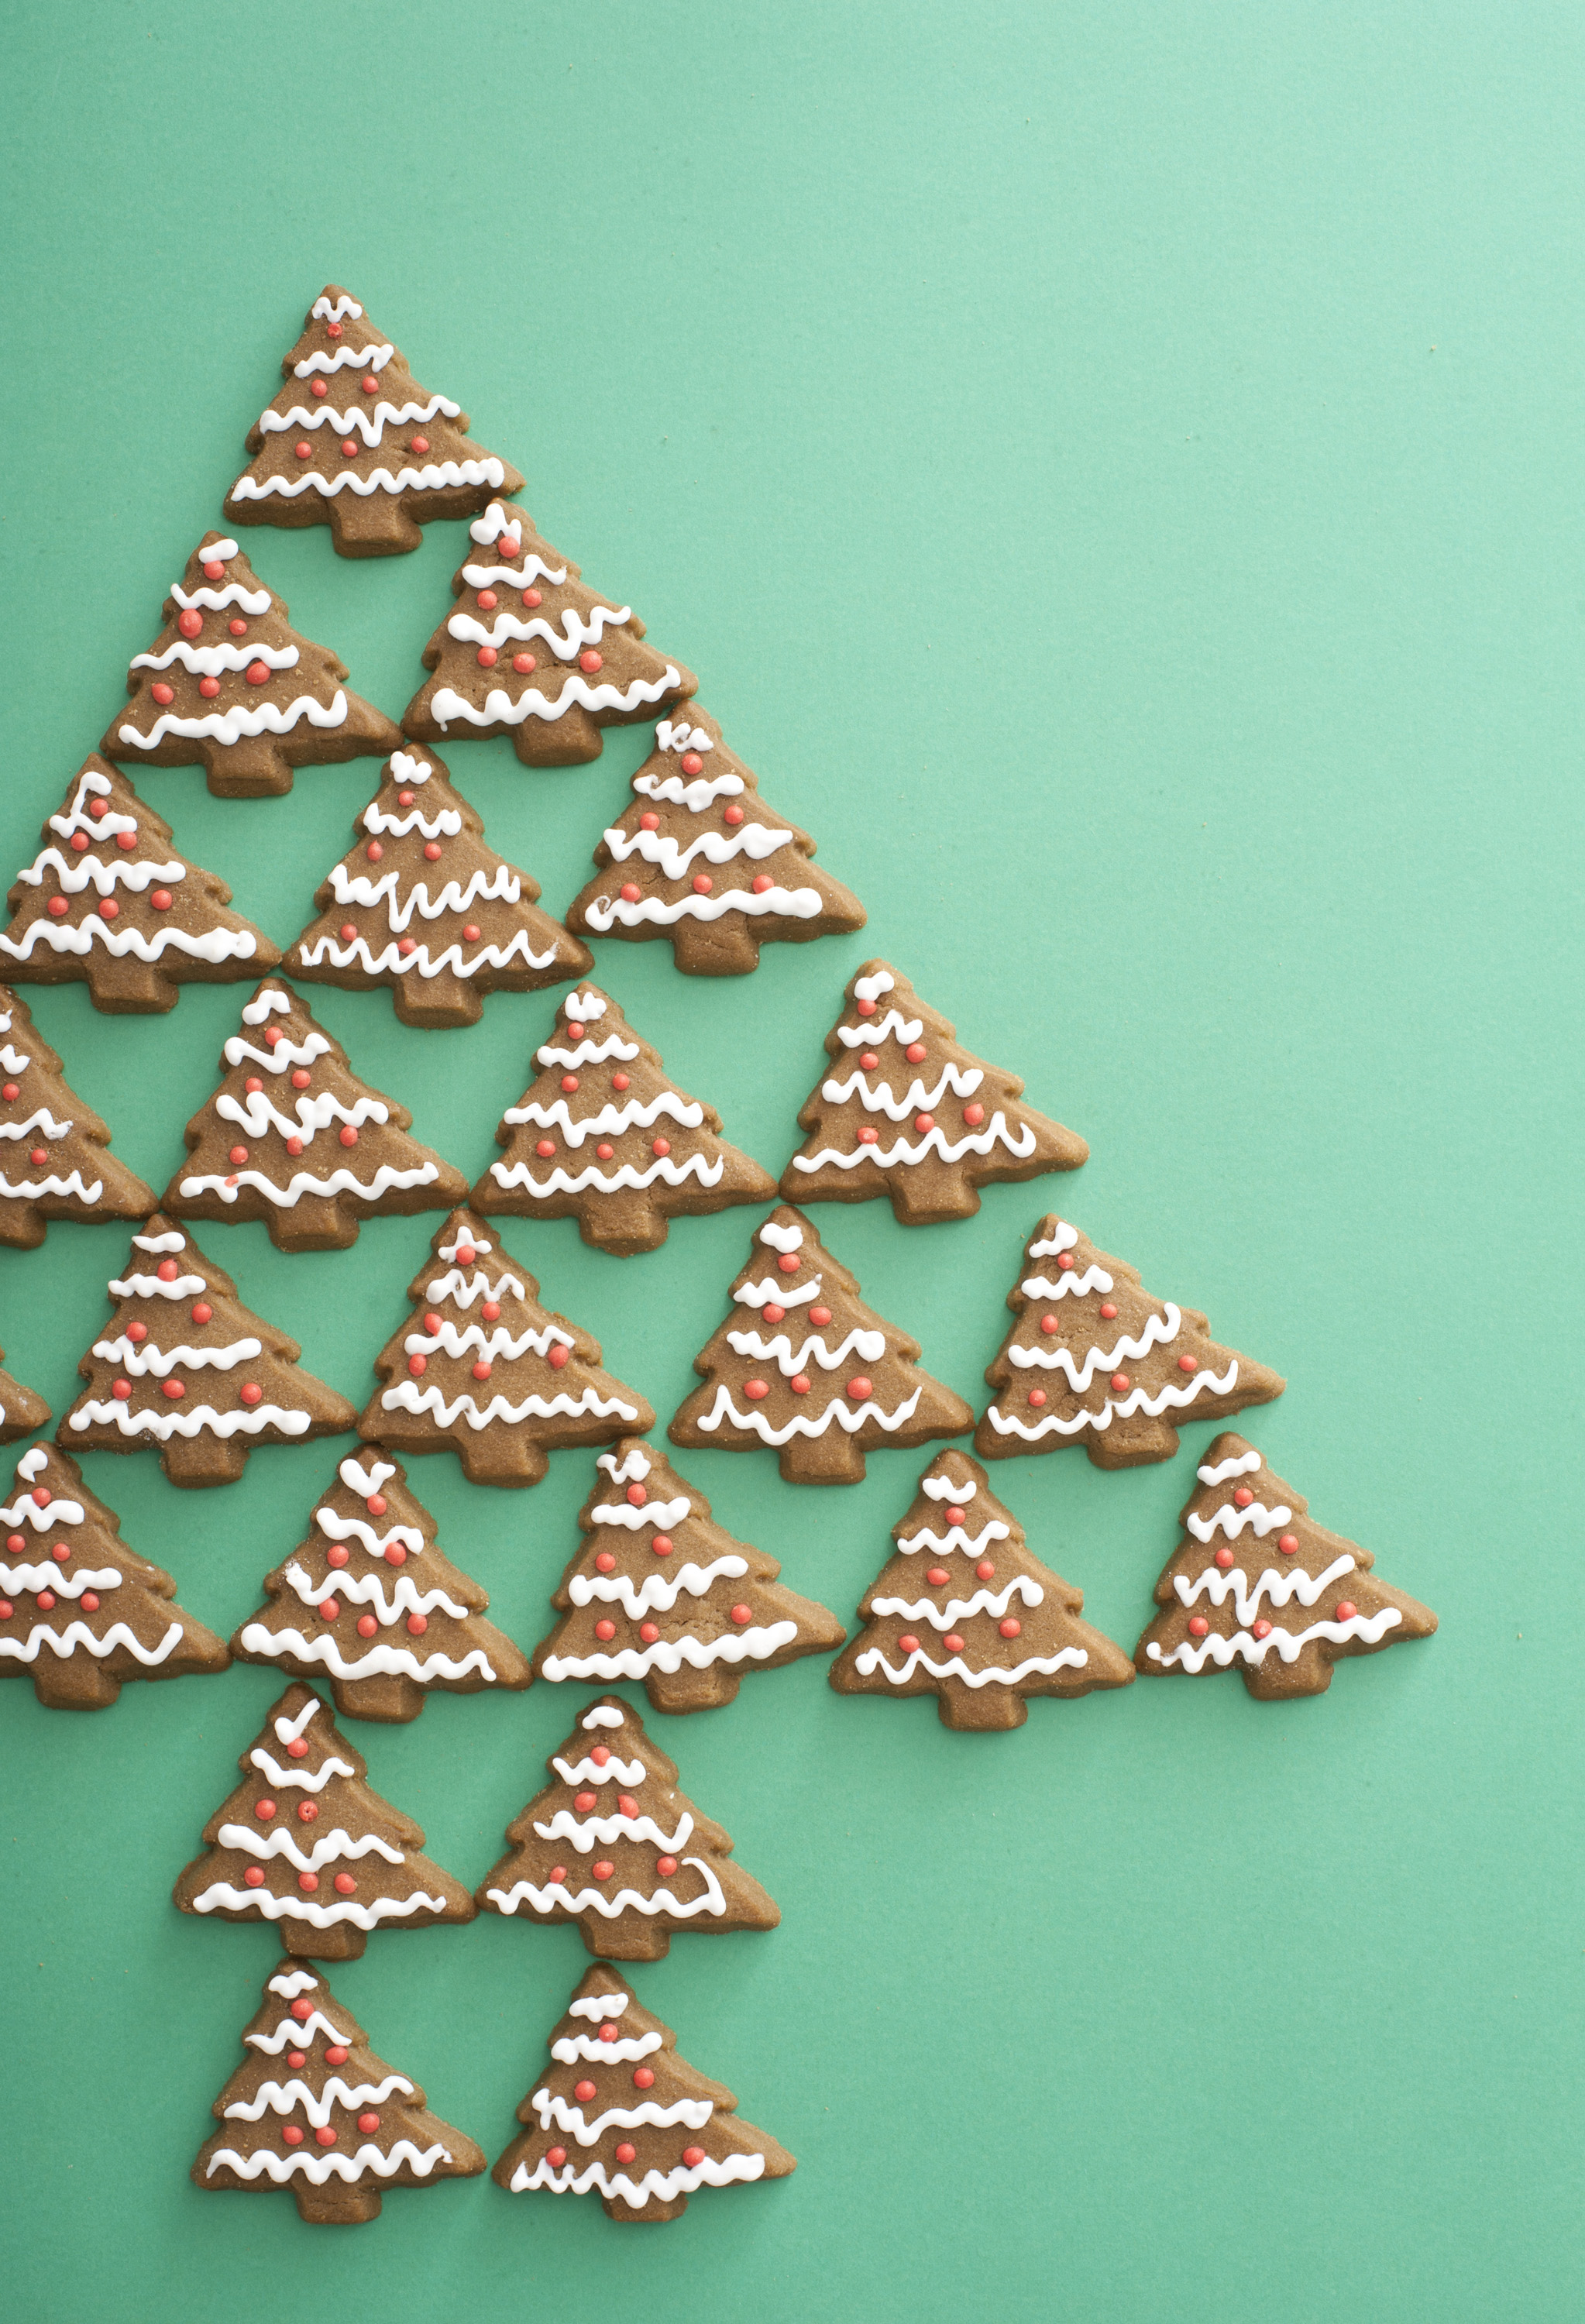 Free Stock Photo 13164 Gingerbread Christmas Tree Still Life